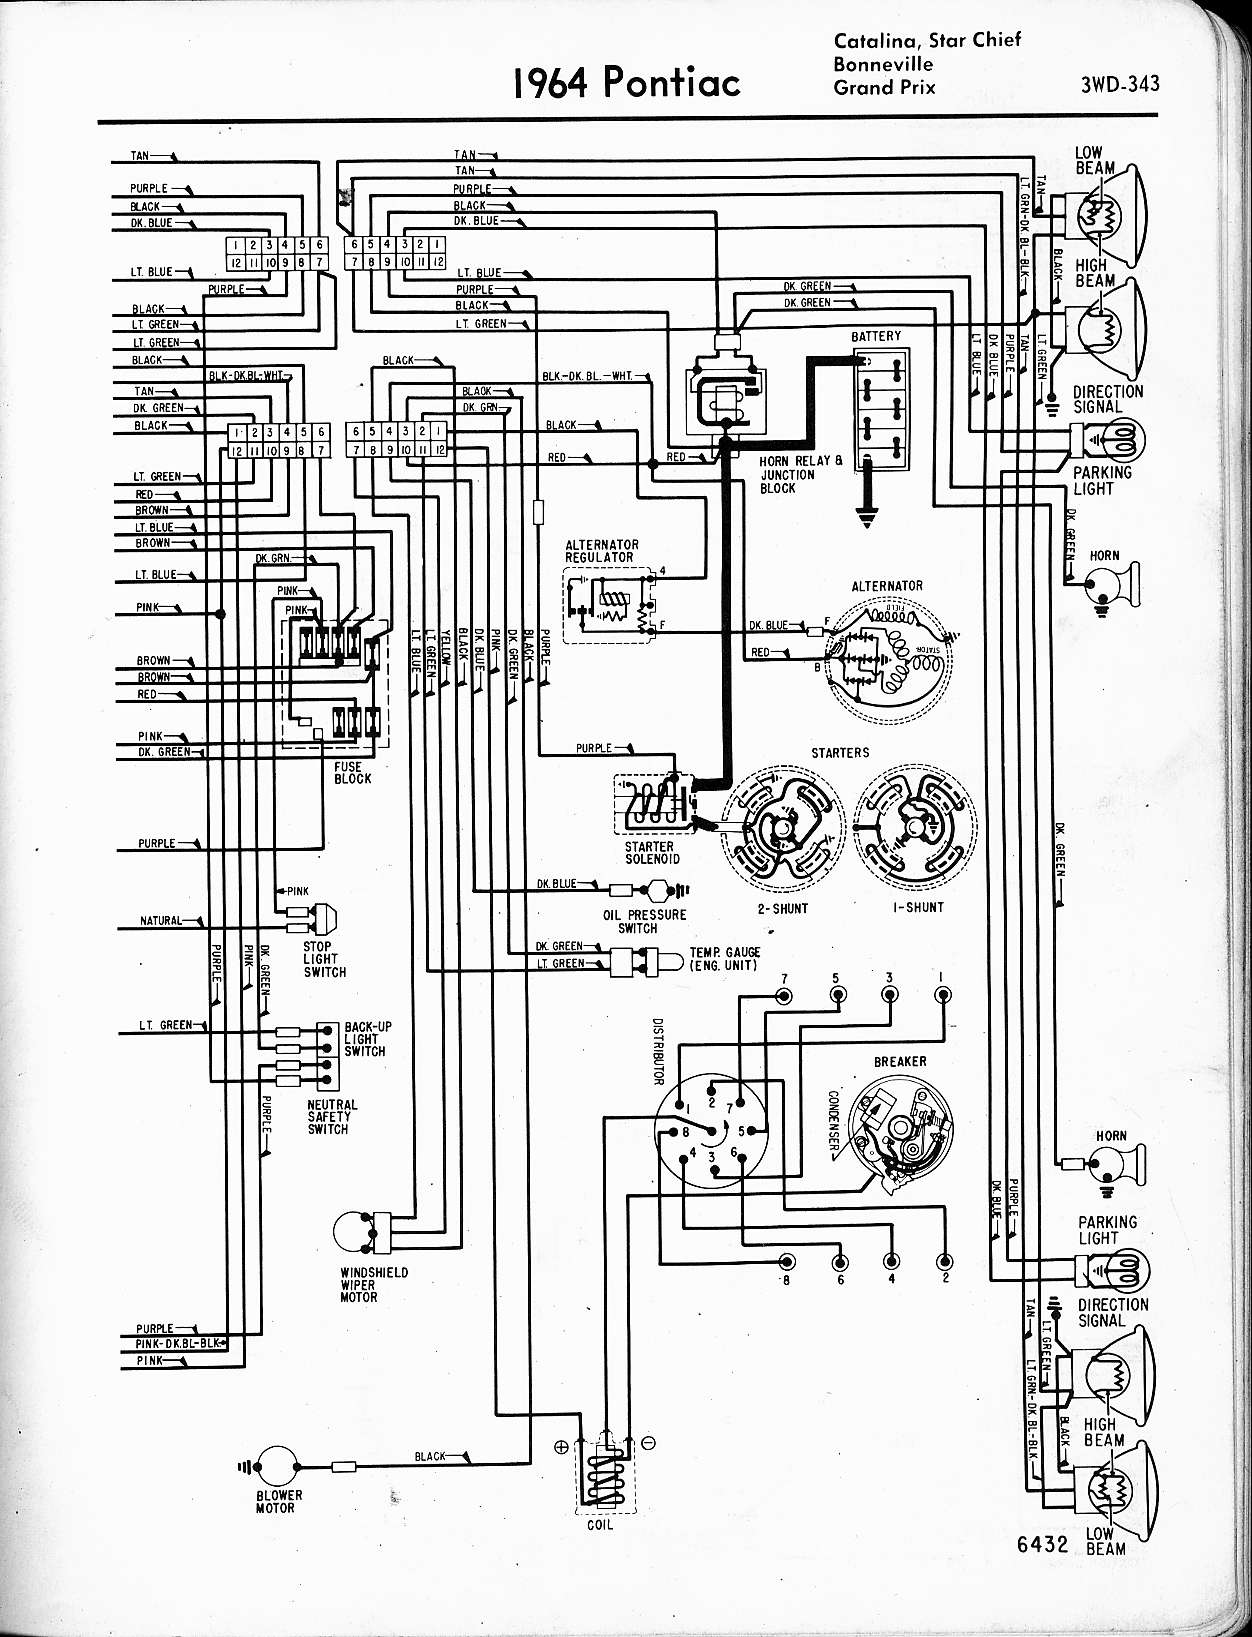 1968 Roadrunner Wiring Diagram Also Fuel Gauge Data Schema 69 Plymouth Schematic 1969 Gto Layout Diagrams U2022 1970 Road Runner